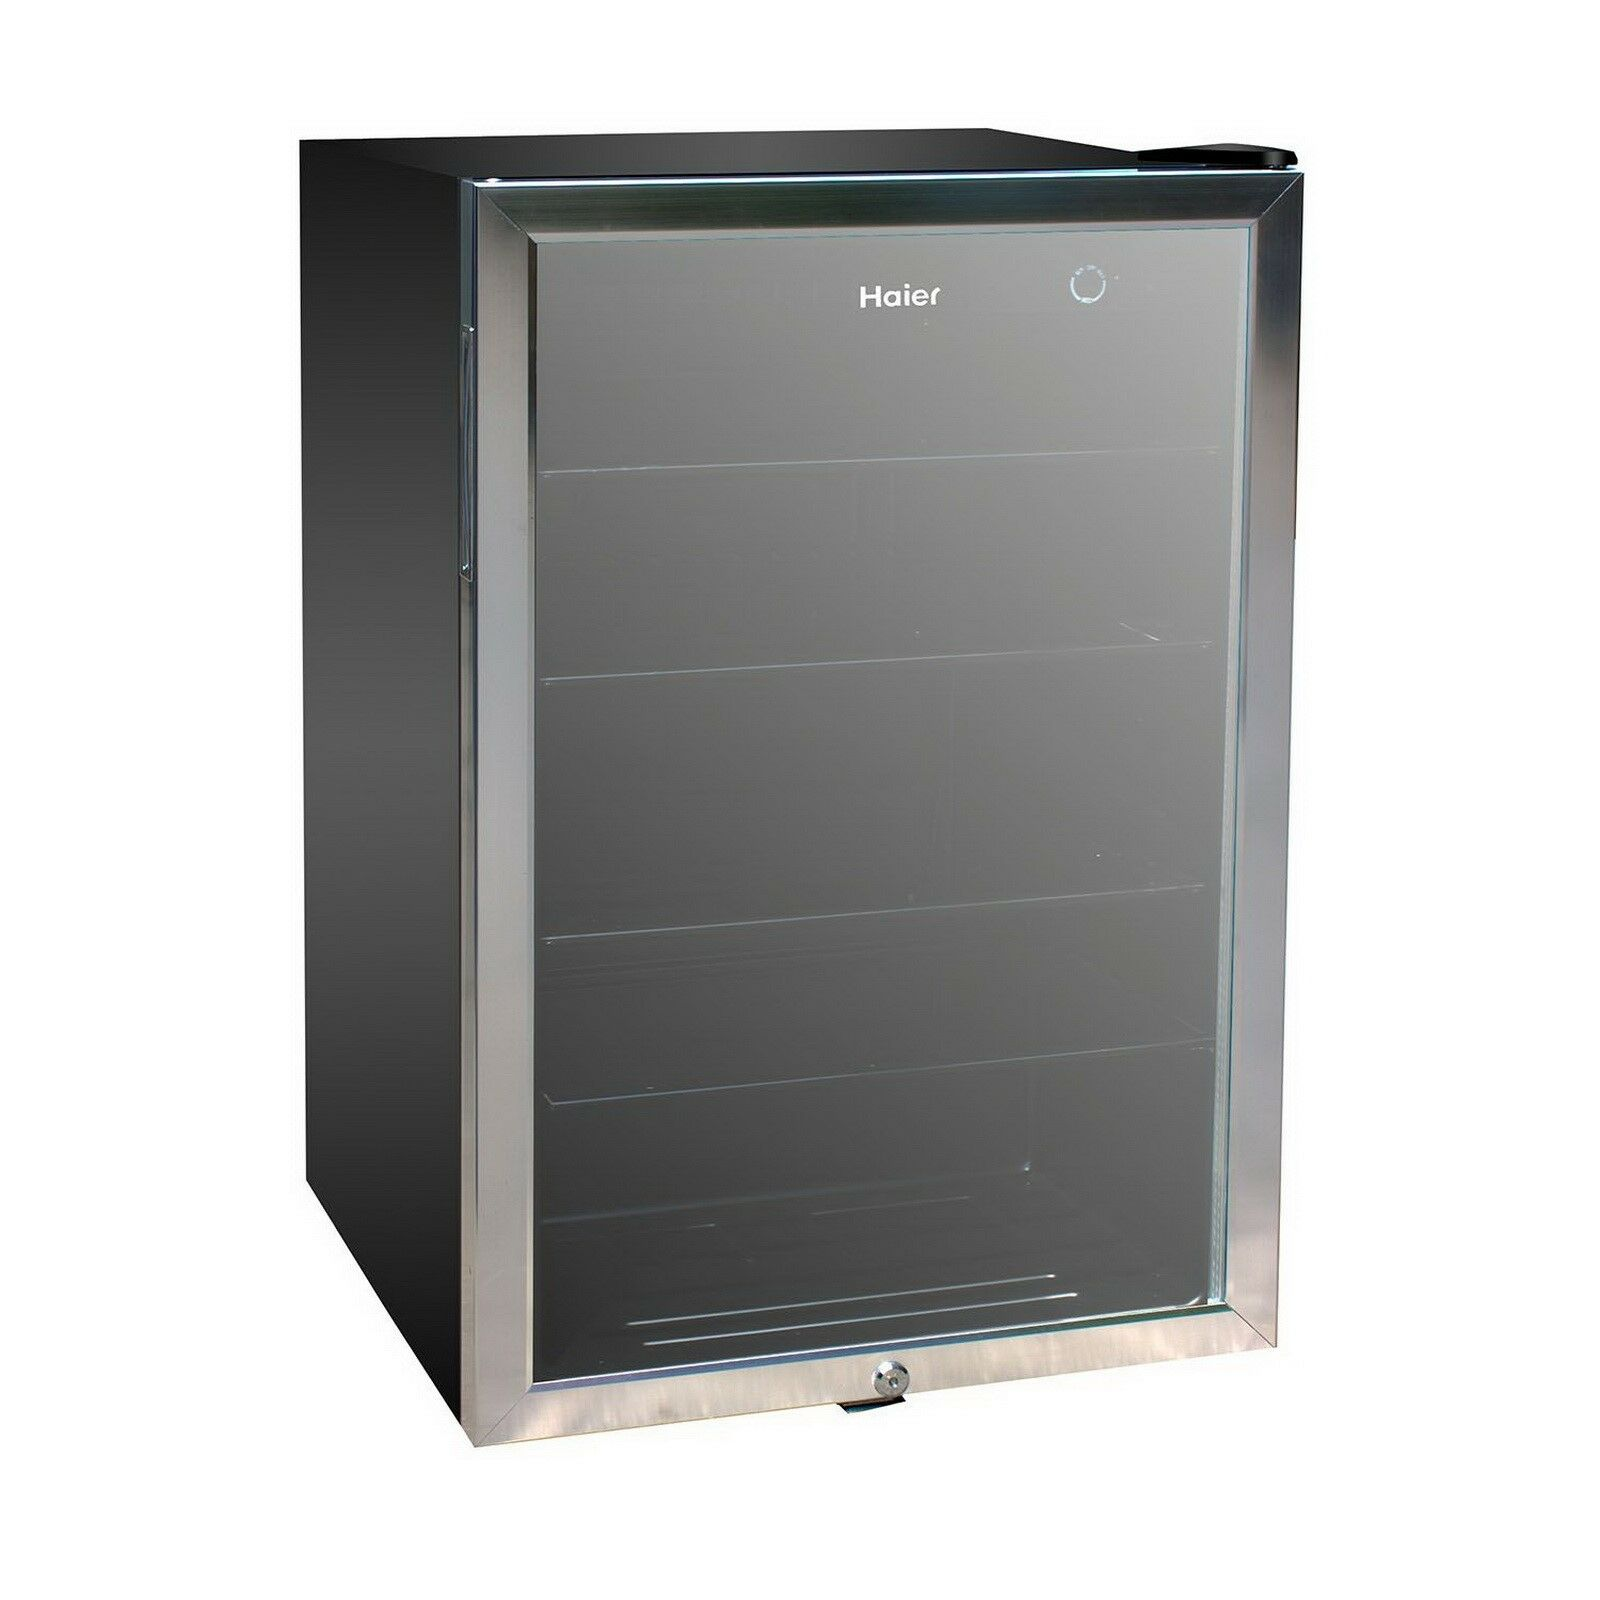 haier mini fridge parts. new haier 150 can beverage mini fridge refrigerator glass door cooler parts .